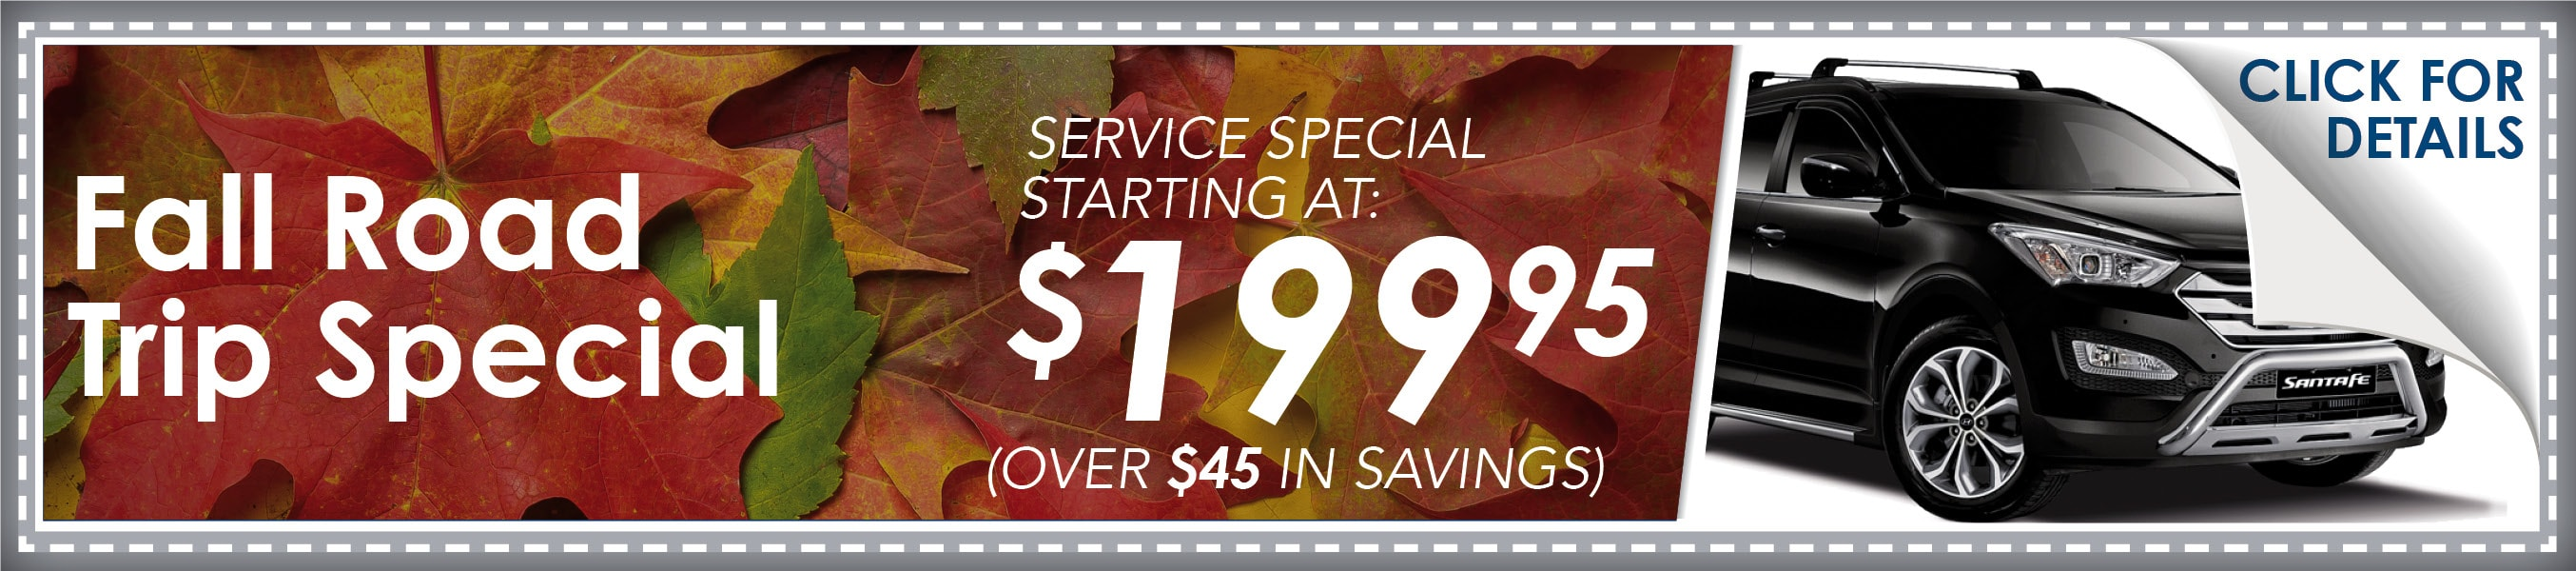 Fall Special Coupon, Phoenix